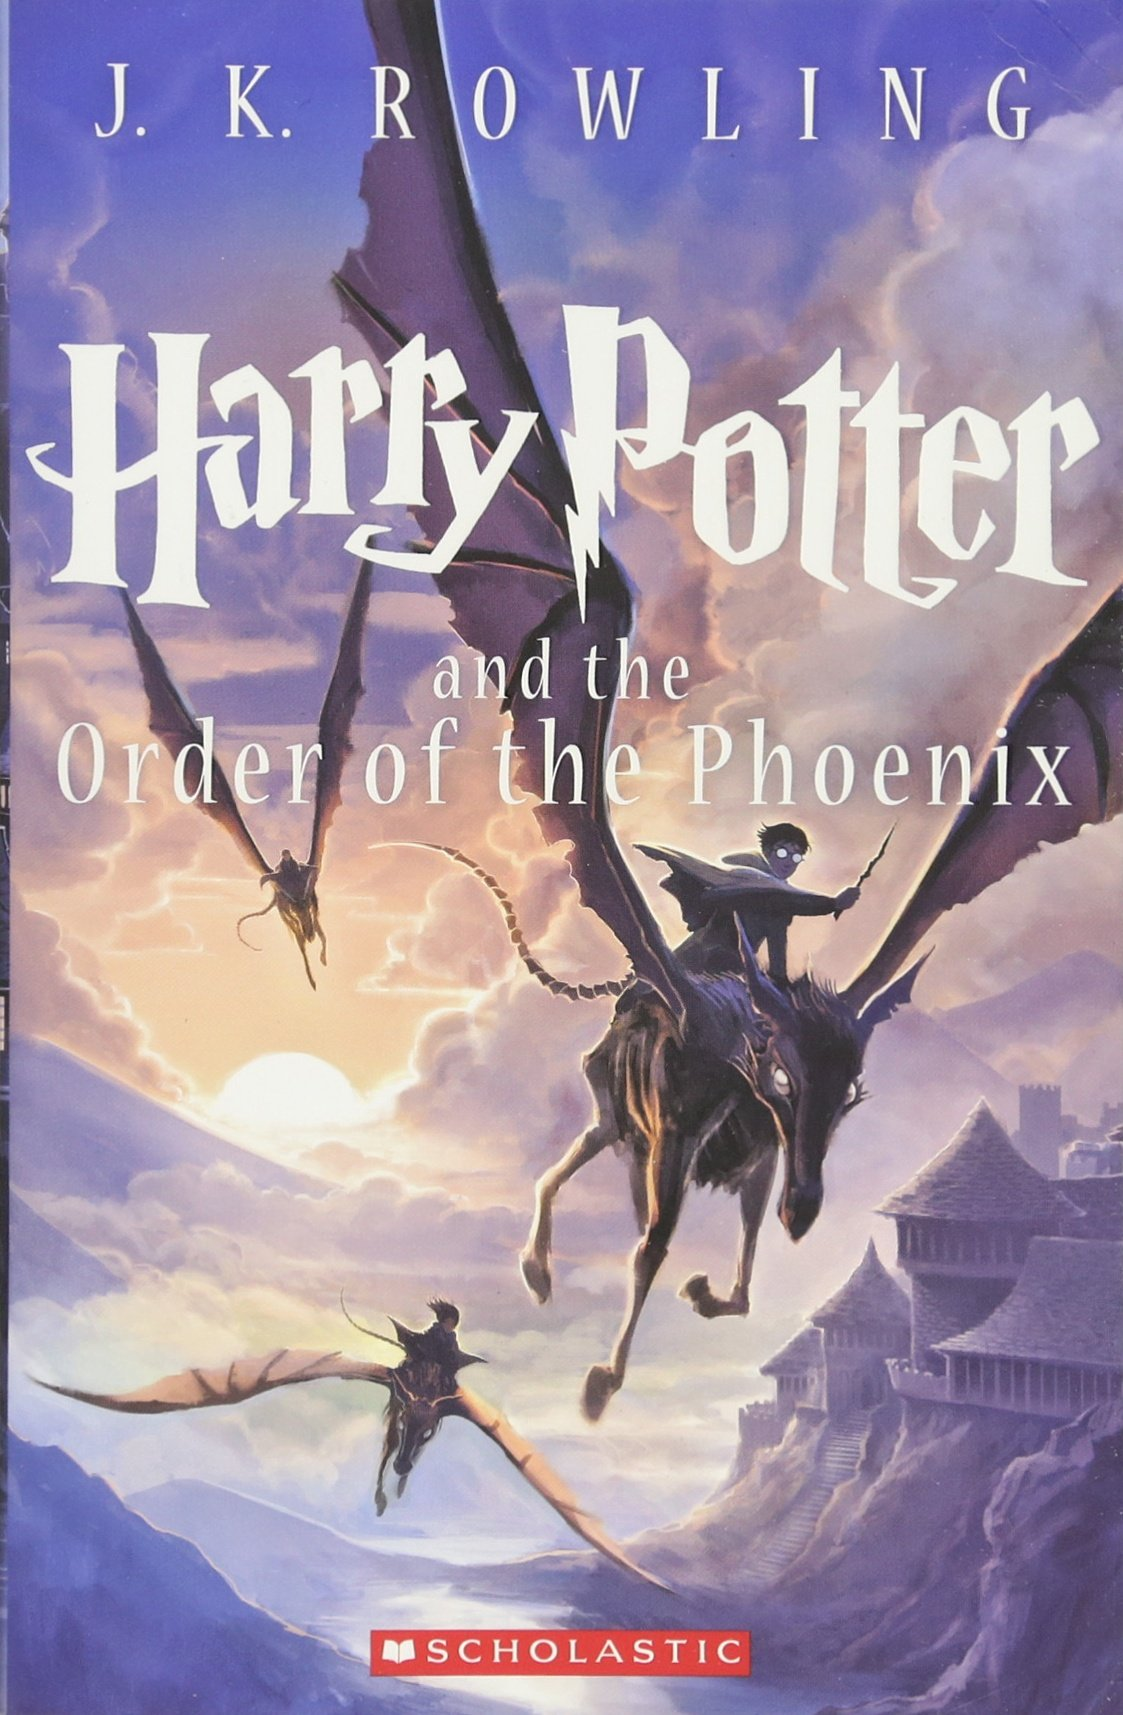 Image result for order of the phoenix book